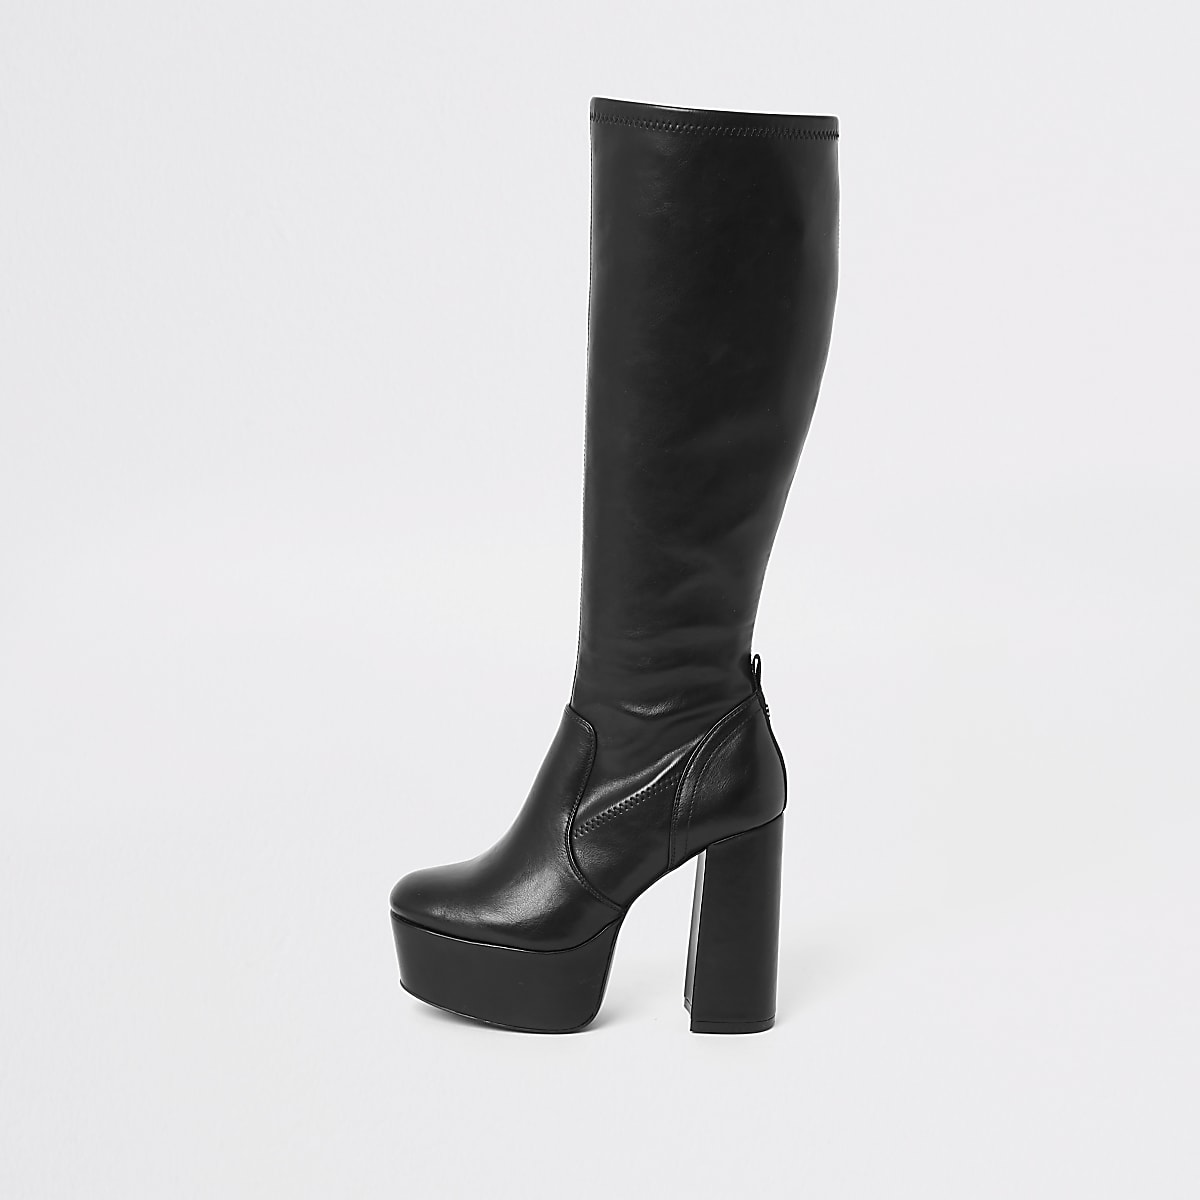 Black knee high platform boots